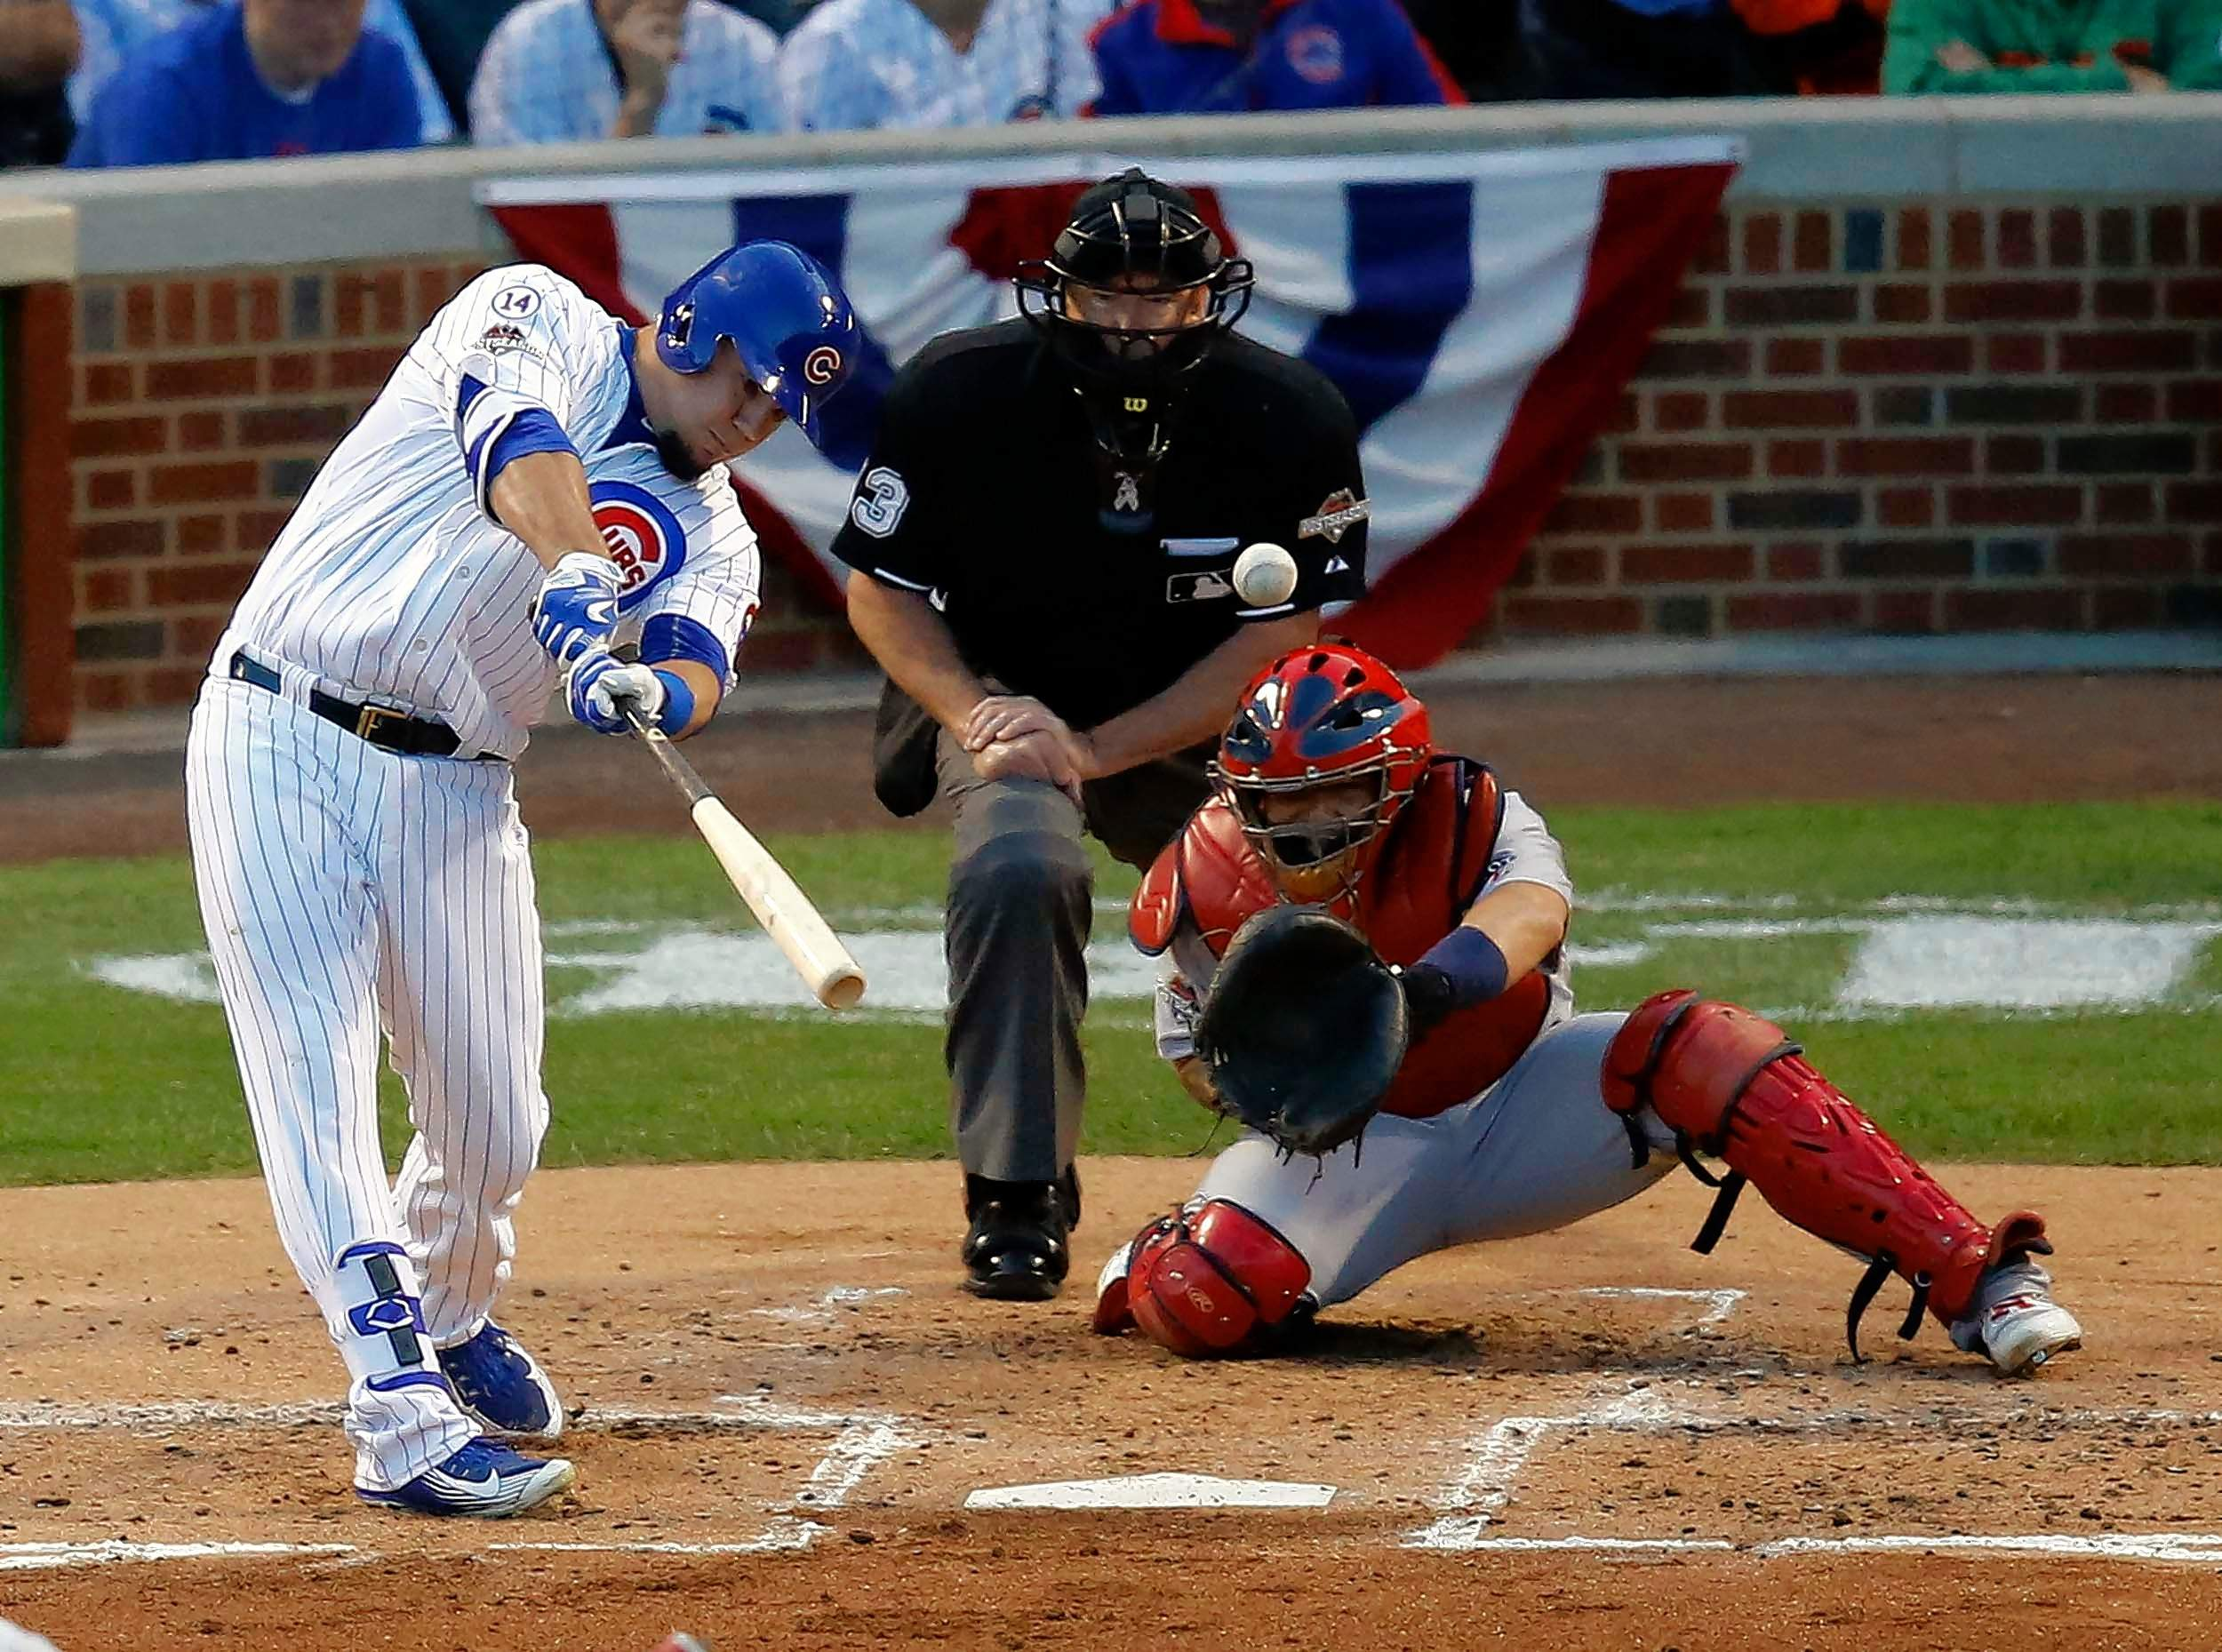 Kyle Schwarber (12) hits a home run against the St. Louis Cardinals during the second inning of Game 3 in the 2015 National League Division Series.